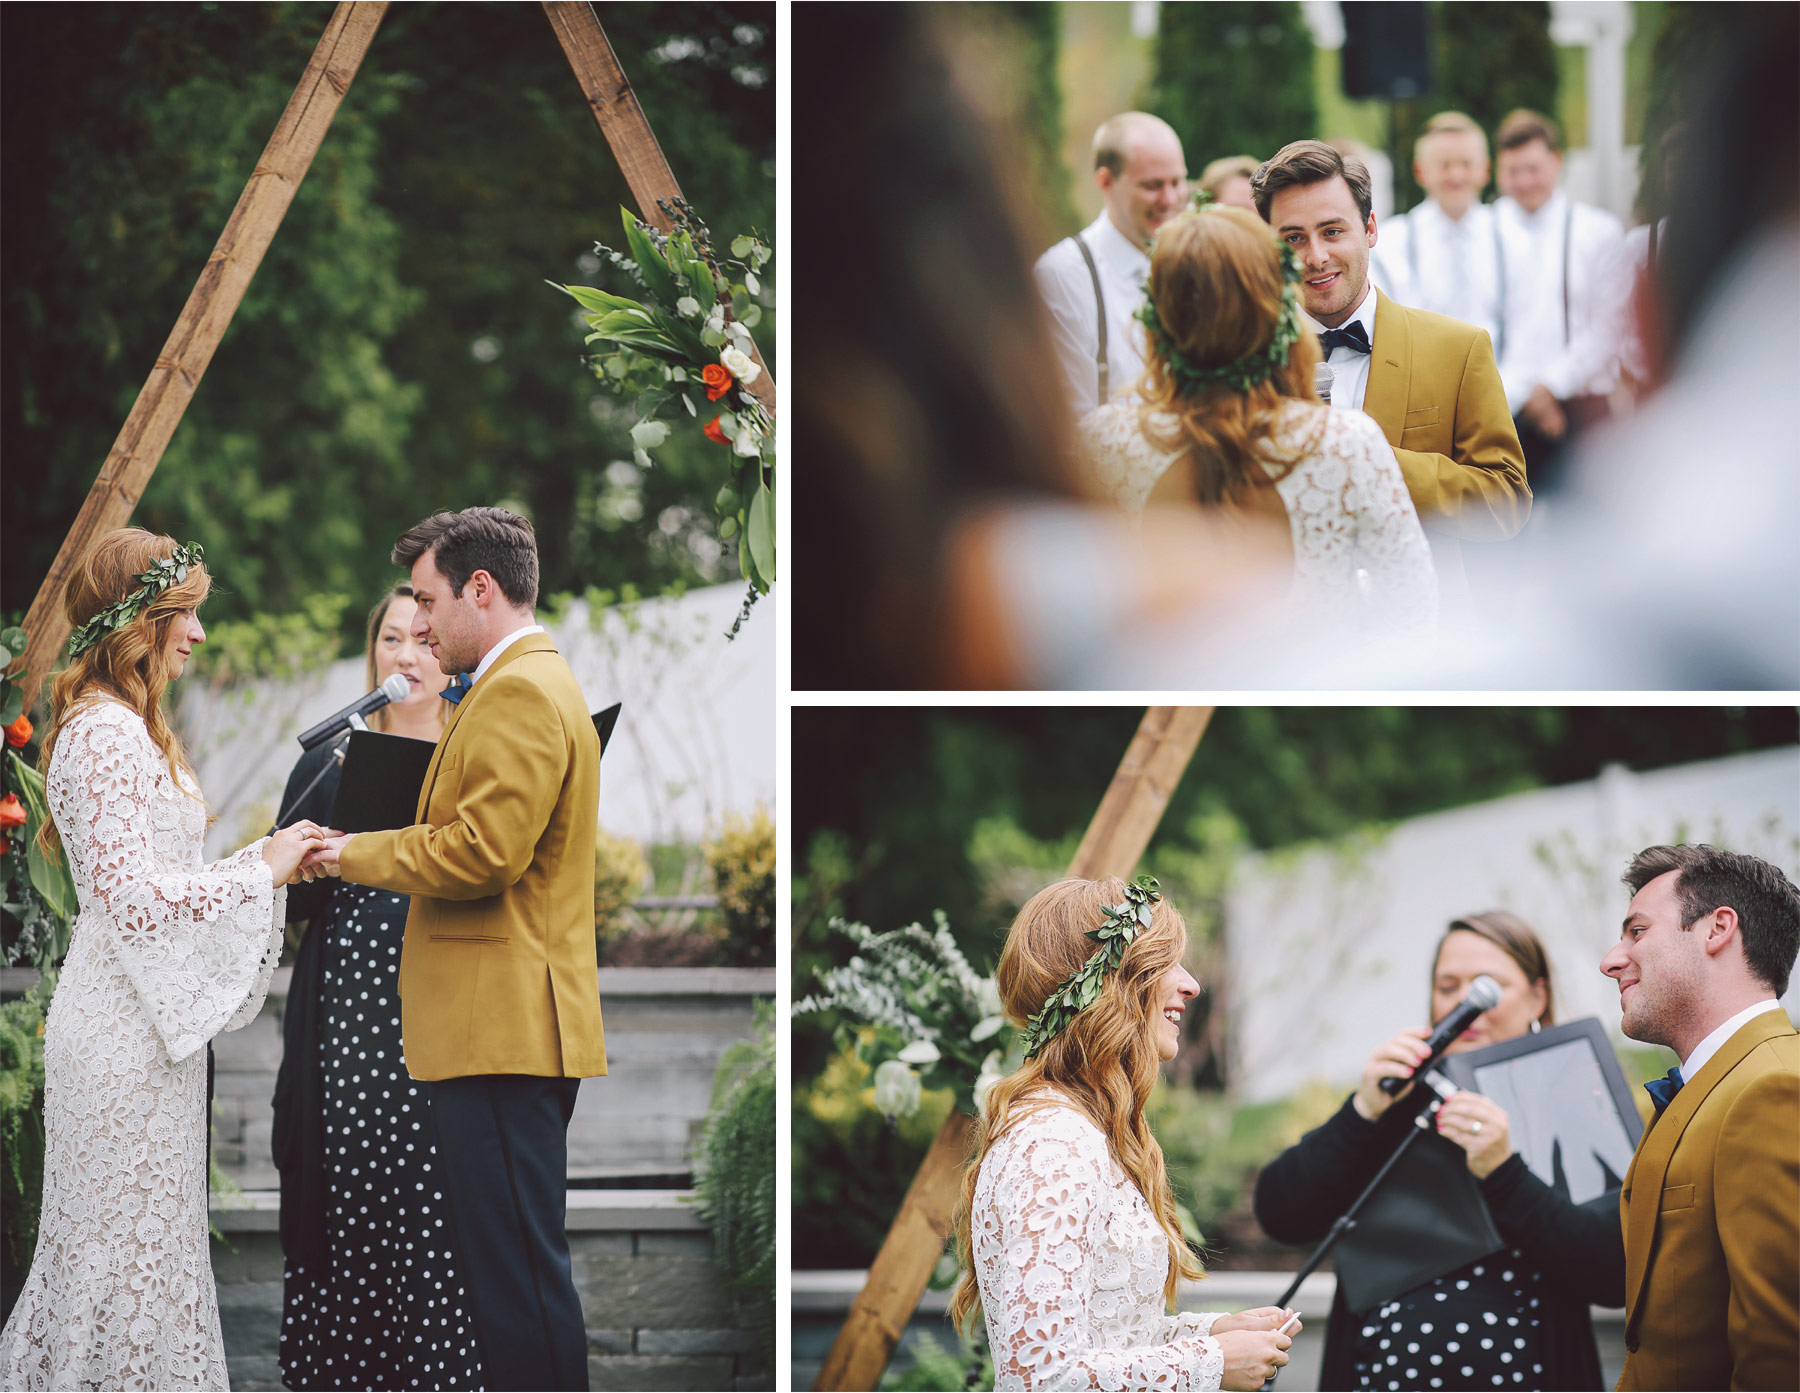 13-Minneapolis-Minnesota-Wedding-Photography-by-Andrew-Vick-Photography-Hutton-House-Outdoor-Ceremony-Vows-Mustard-Suit-Bohemian-Kelsey-and-Matt.jpg